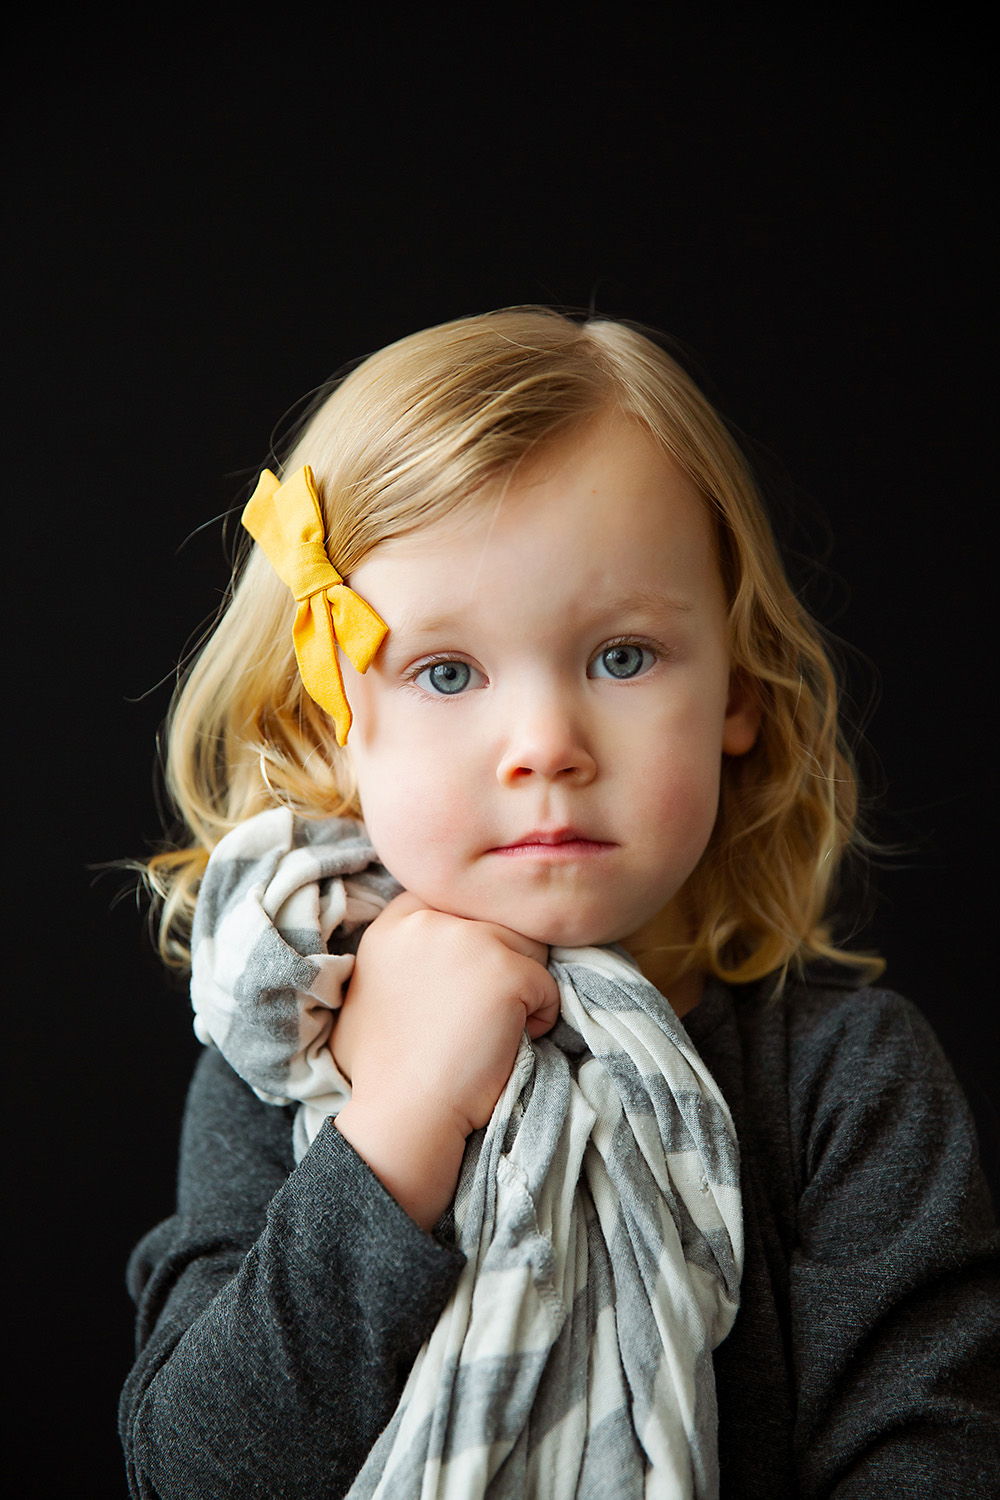 Studio portrait of a child with her blanket